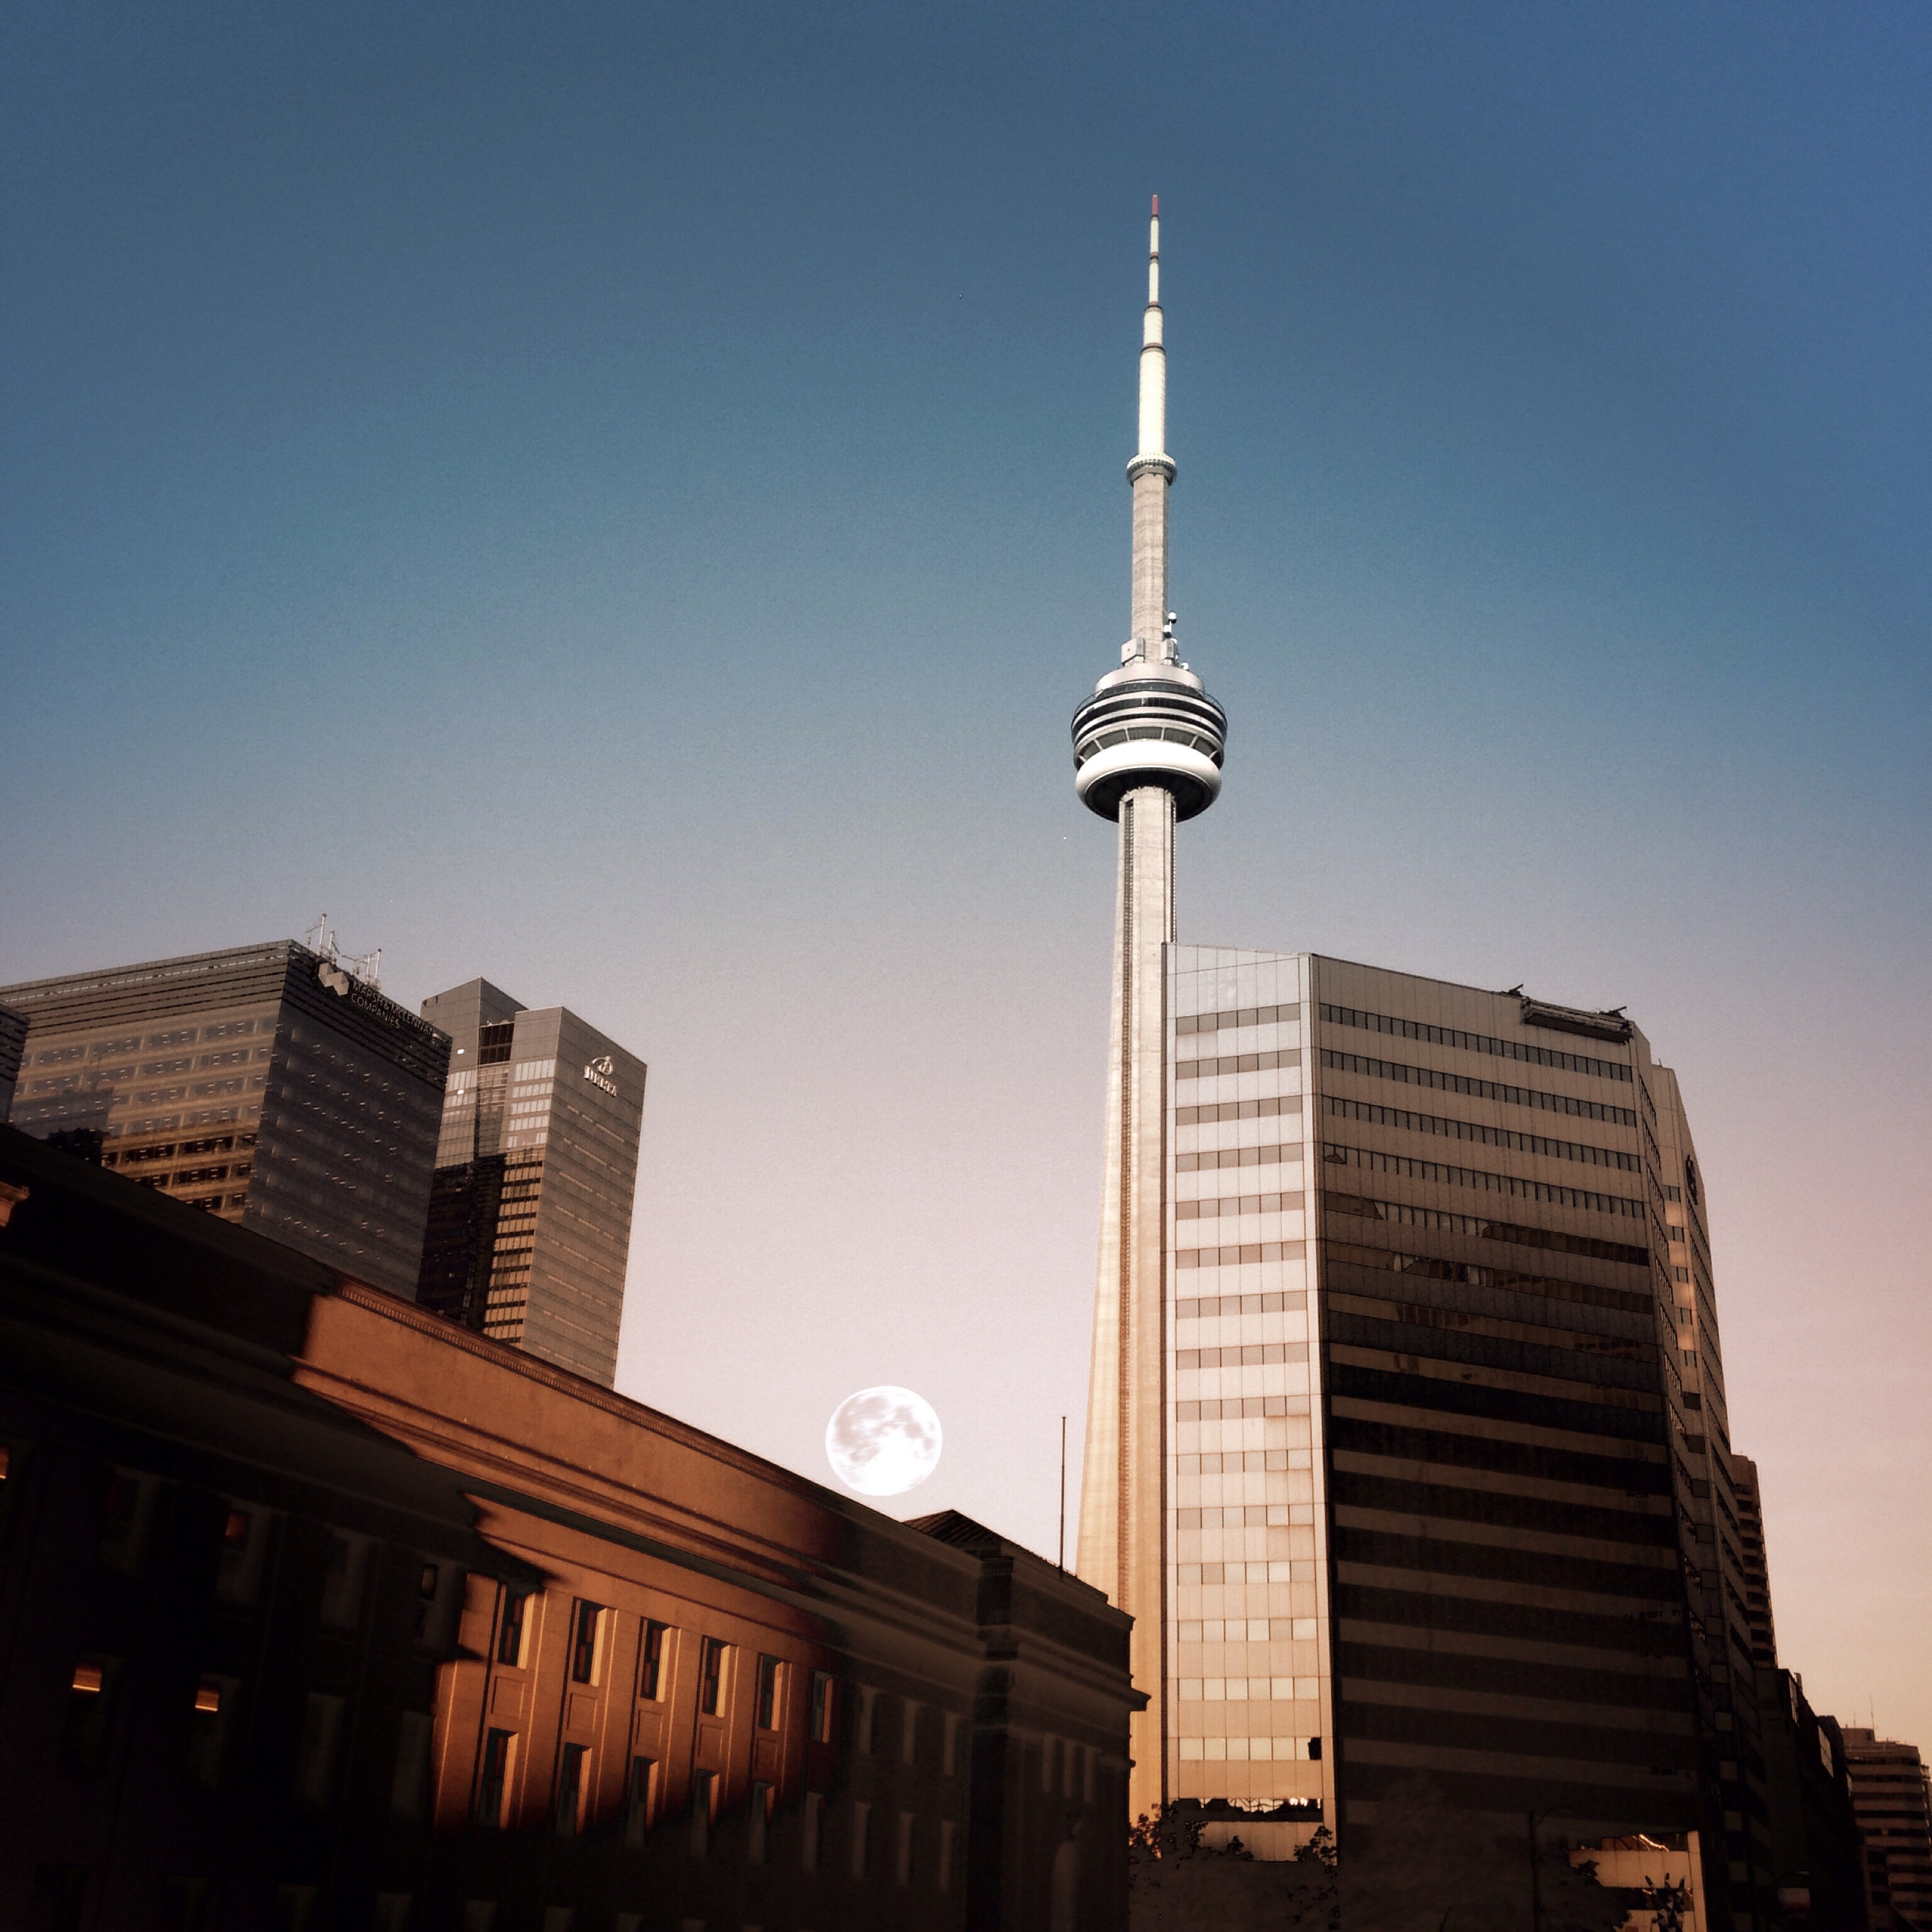 The moon rises from behind a neighbouring building near the CN Tower, Toronto